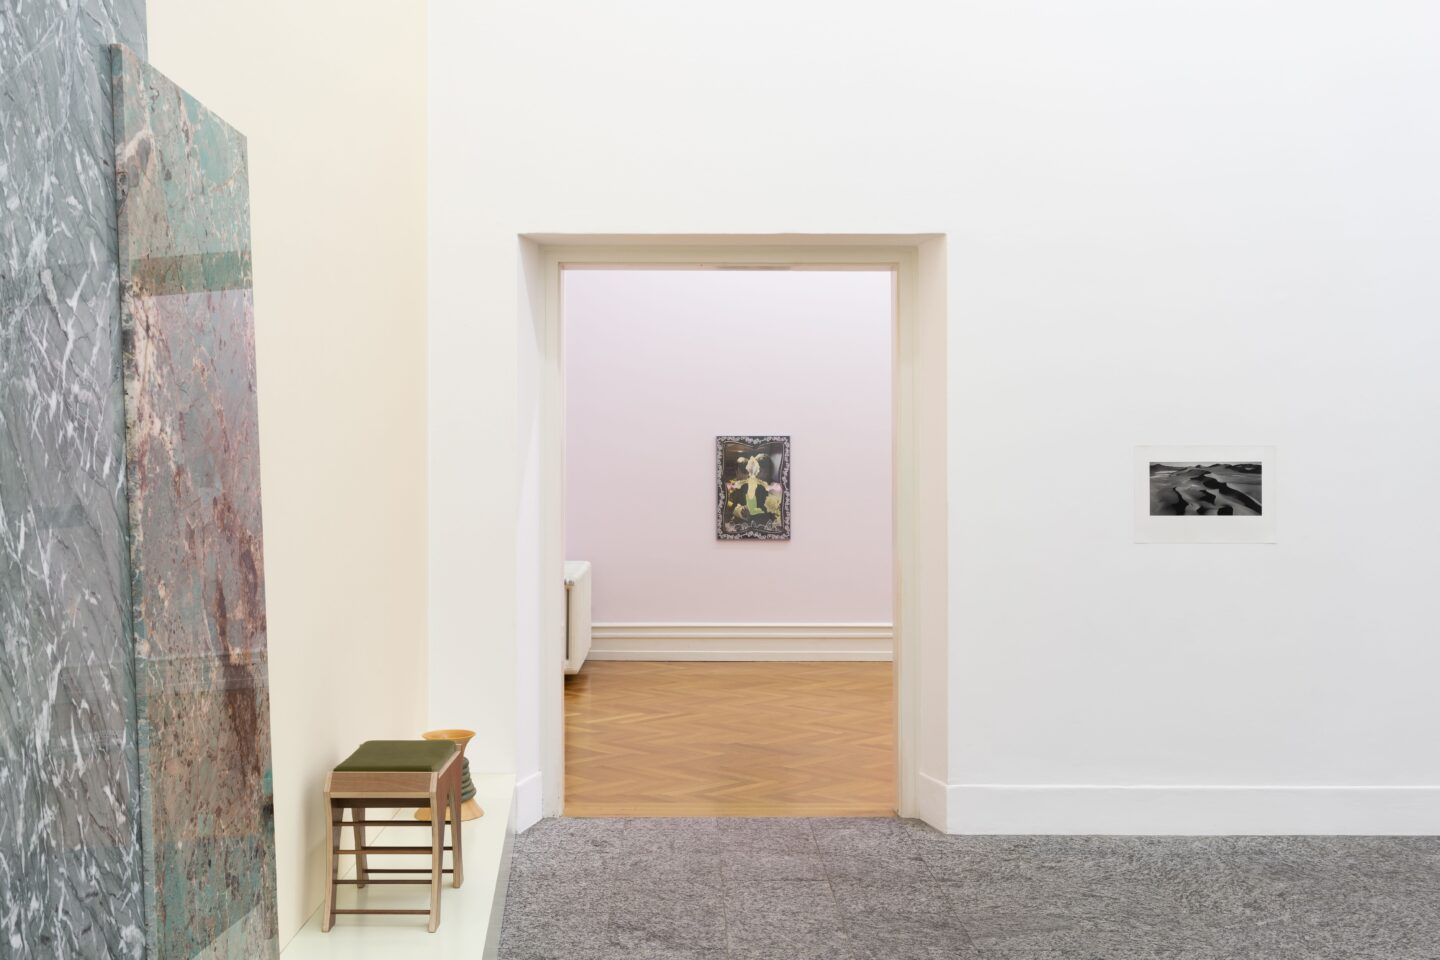 Exhibition View Marc Camille Chaimowicz Soloshow «Dear Valérie…» at Kunsthalle Bern, Bern, 2020 / Photo: Gunnar Meier / Courtesy: the artist and Kunsthalle Bern